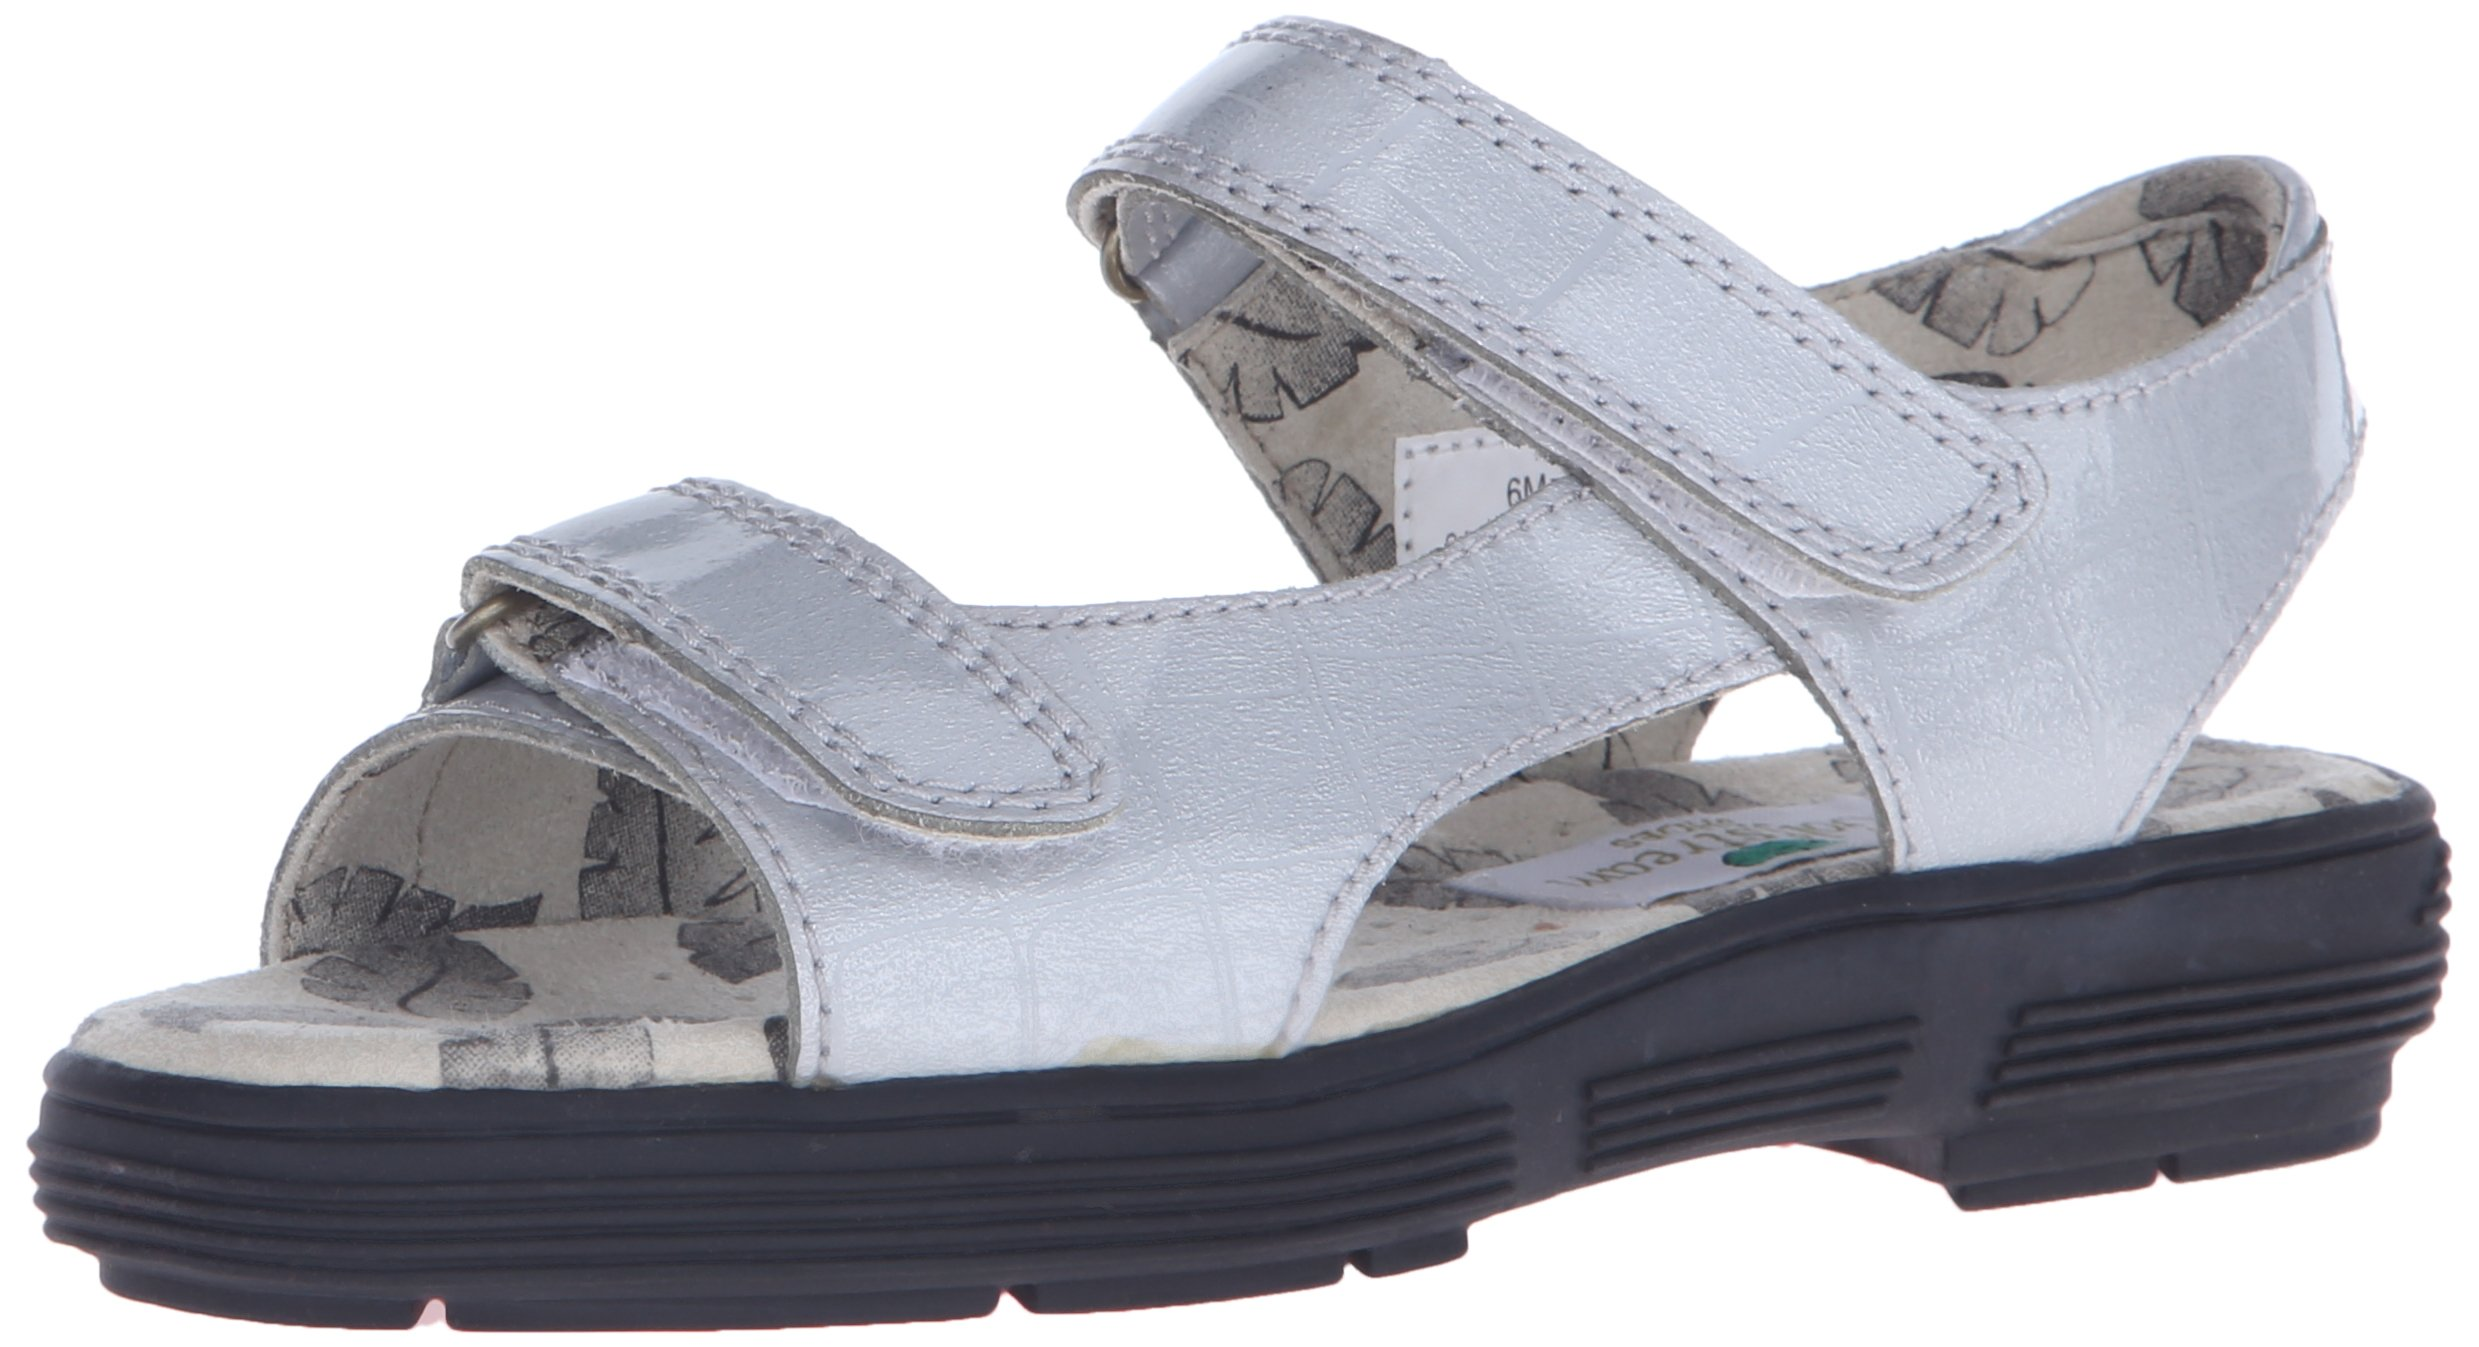 Golfstream Women's Two Strap Sandal Golf Shoe, Tuscany Faux Crocodile/Silver, 5 M US by Golfstream (Image #1)